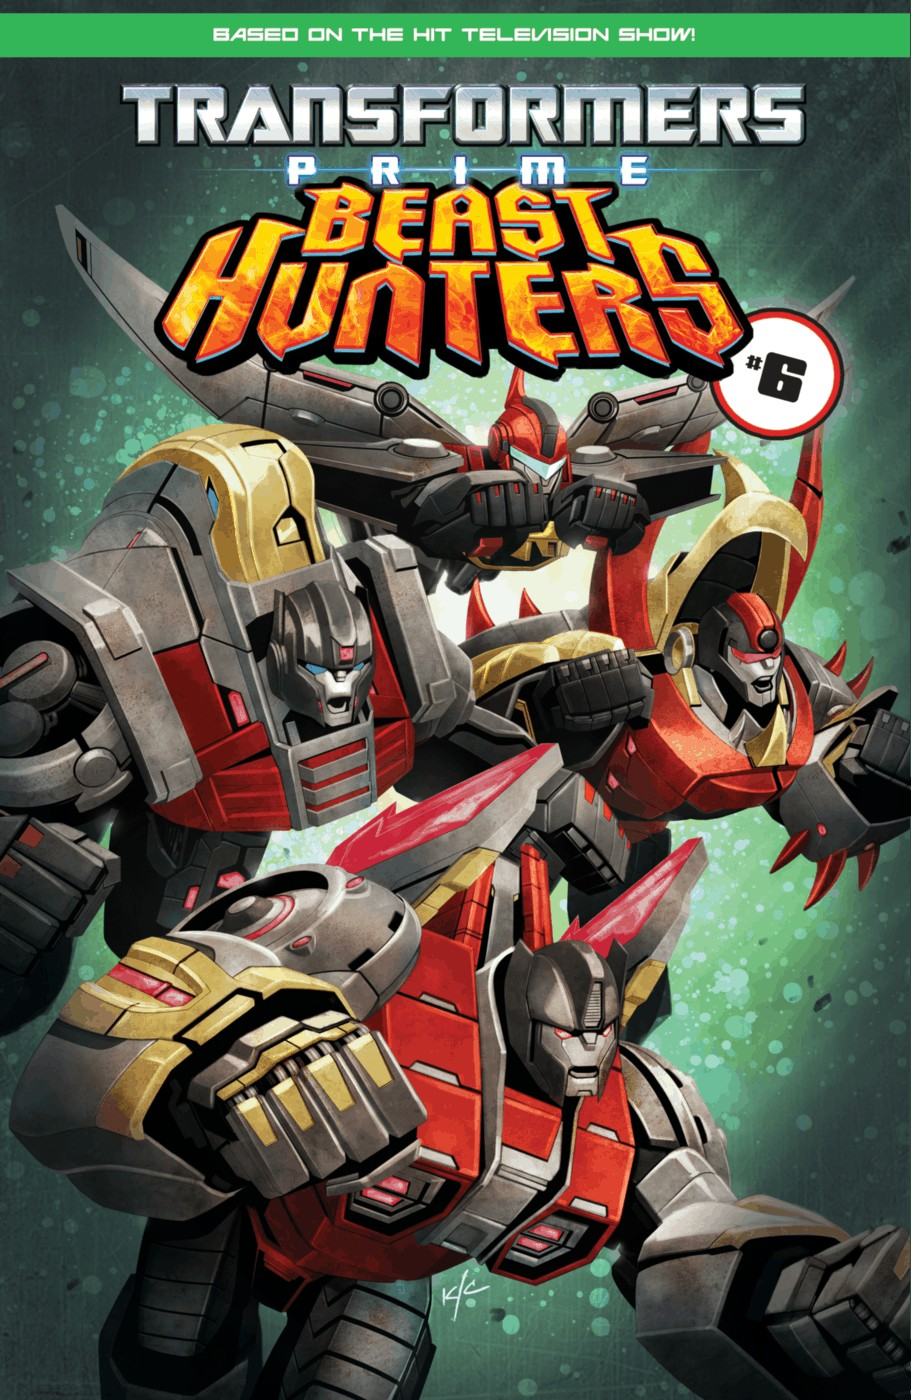 Read online Transformers Prime: Beast Hunters comic -  Issue #5 - 25